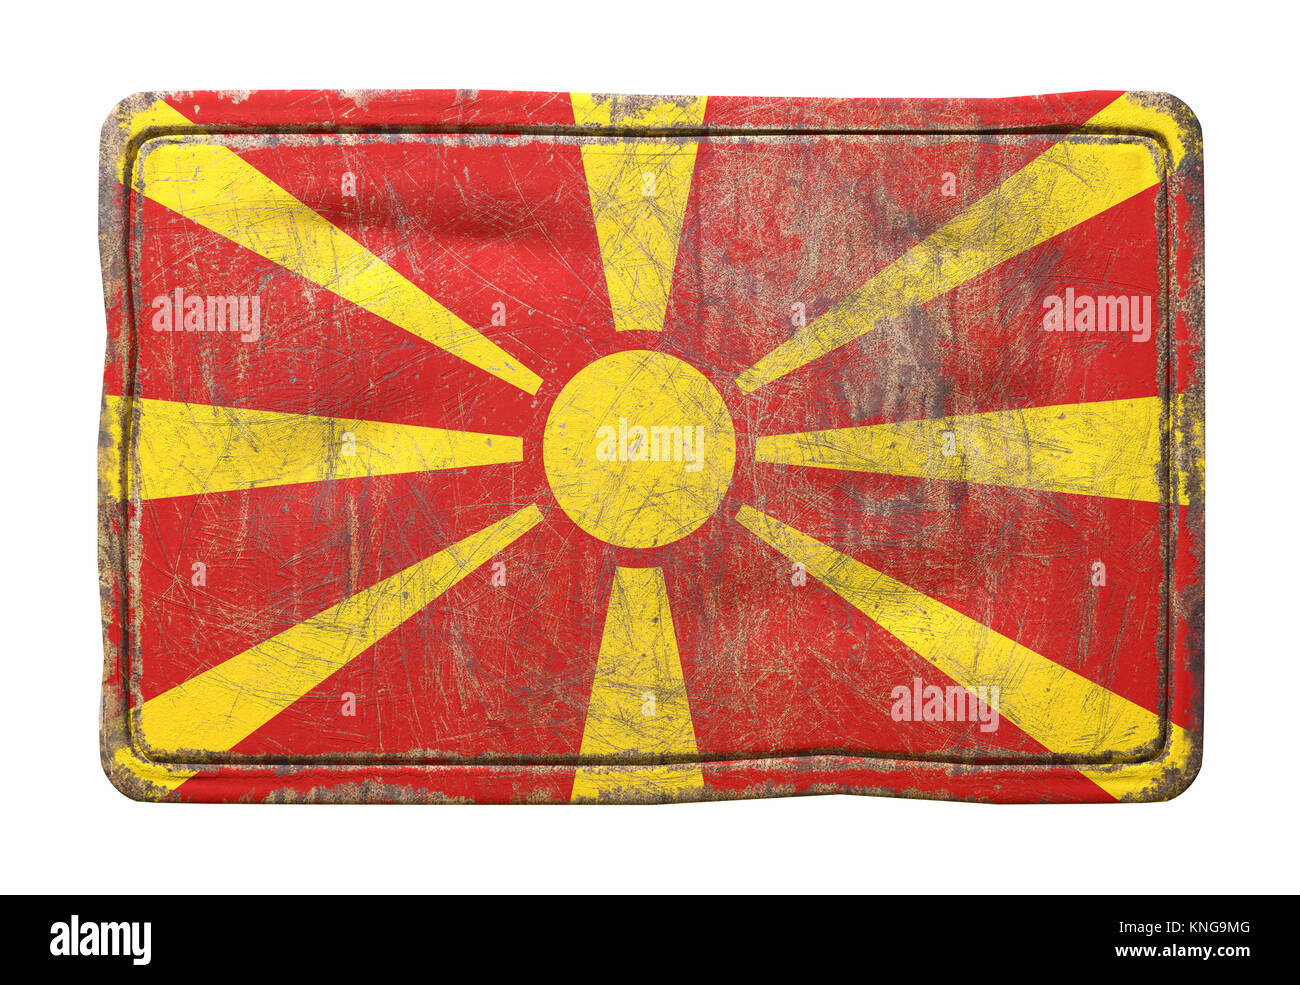 3d rendering of a Macedonia flag over a rusty metallic plate. Isolated on white background. - Stock Image